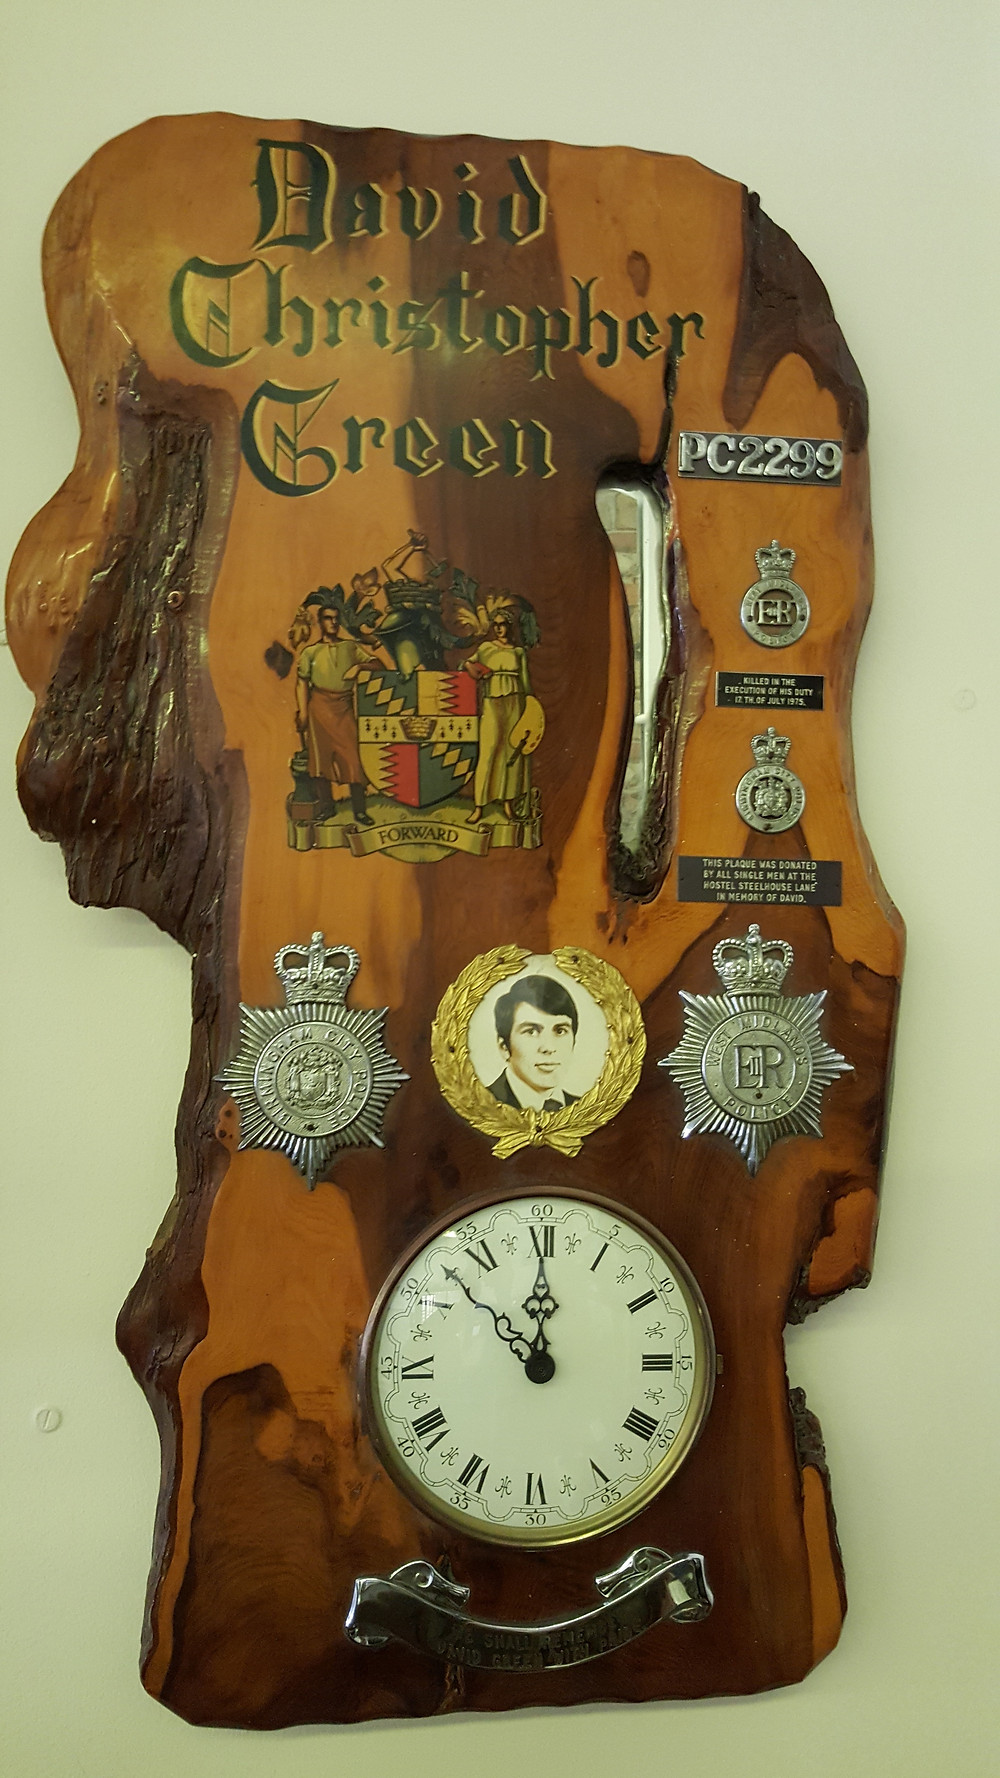 Memorial to PC Green, paid for by his colleagues at the Steelhouse Lane Hostel